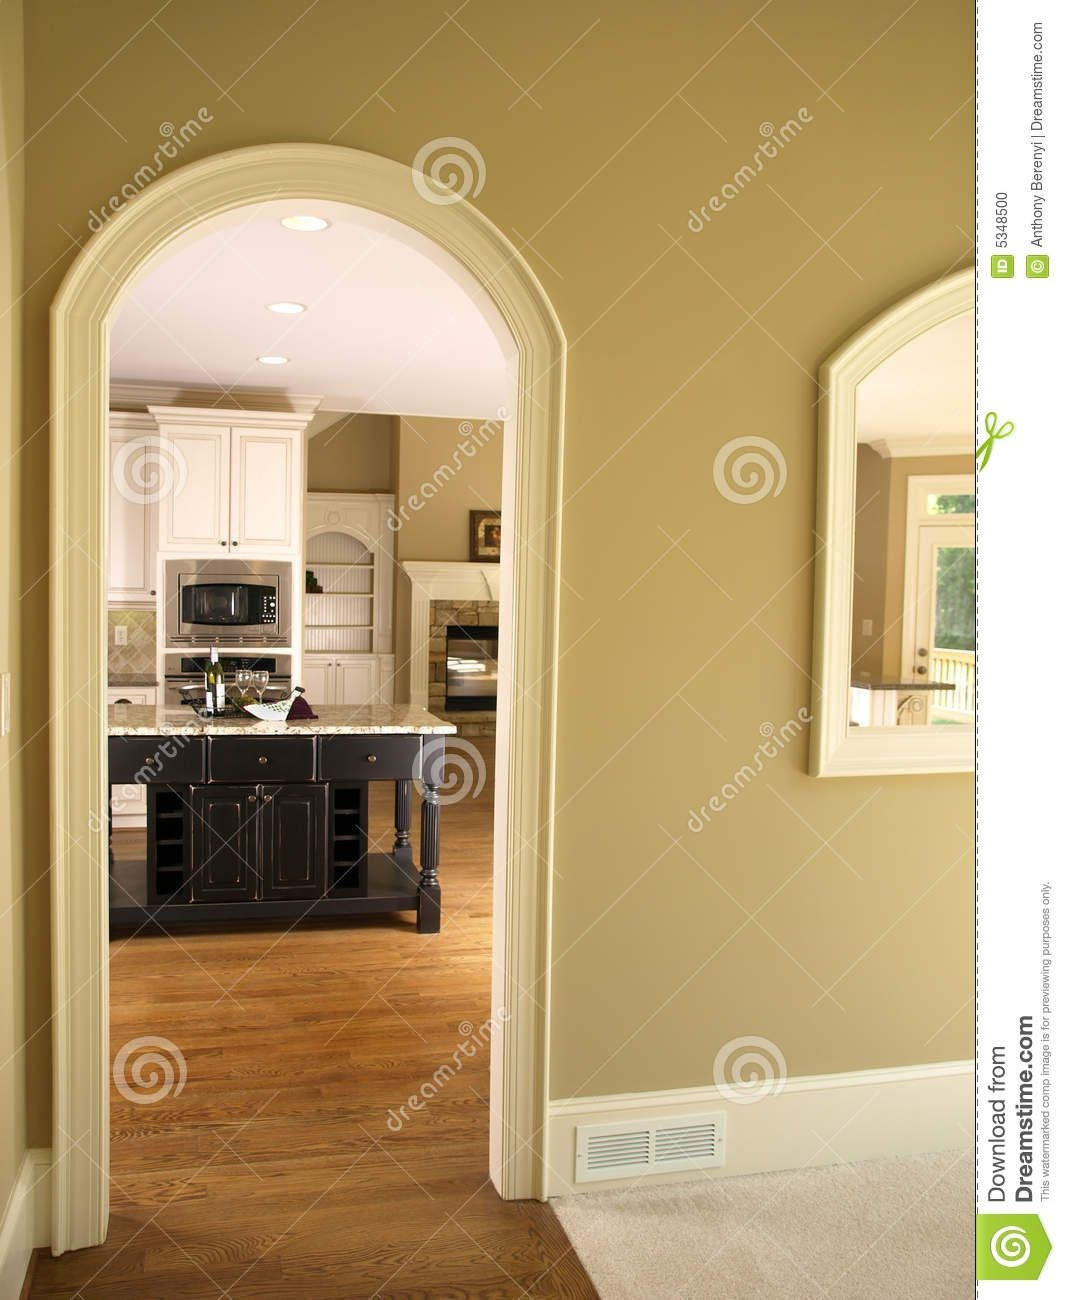 Luxury Model Home Kitchen Arch Door Stock Photo  Image Of Indoor Furniture 5348500